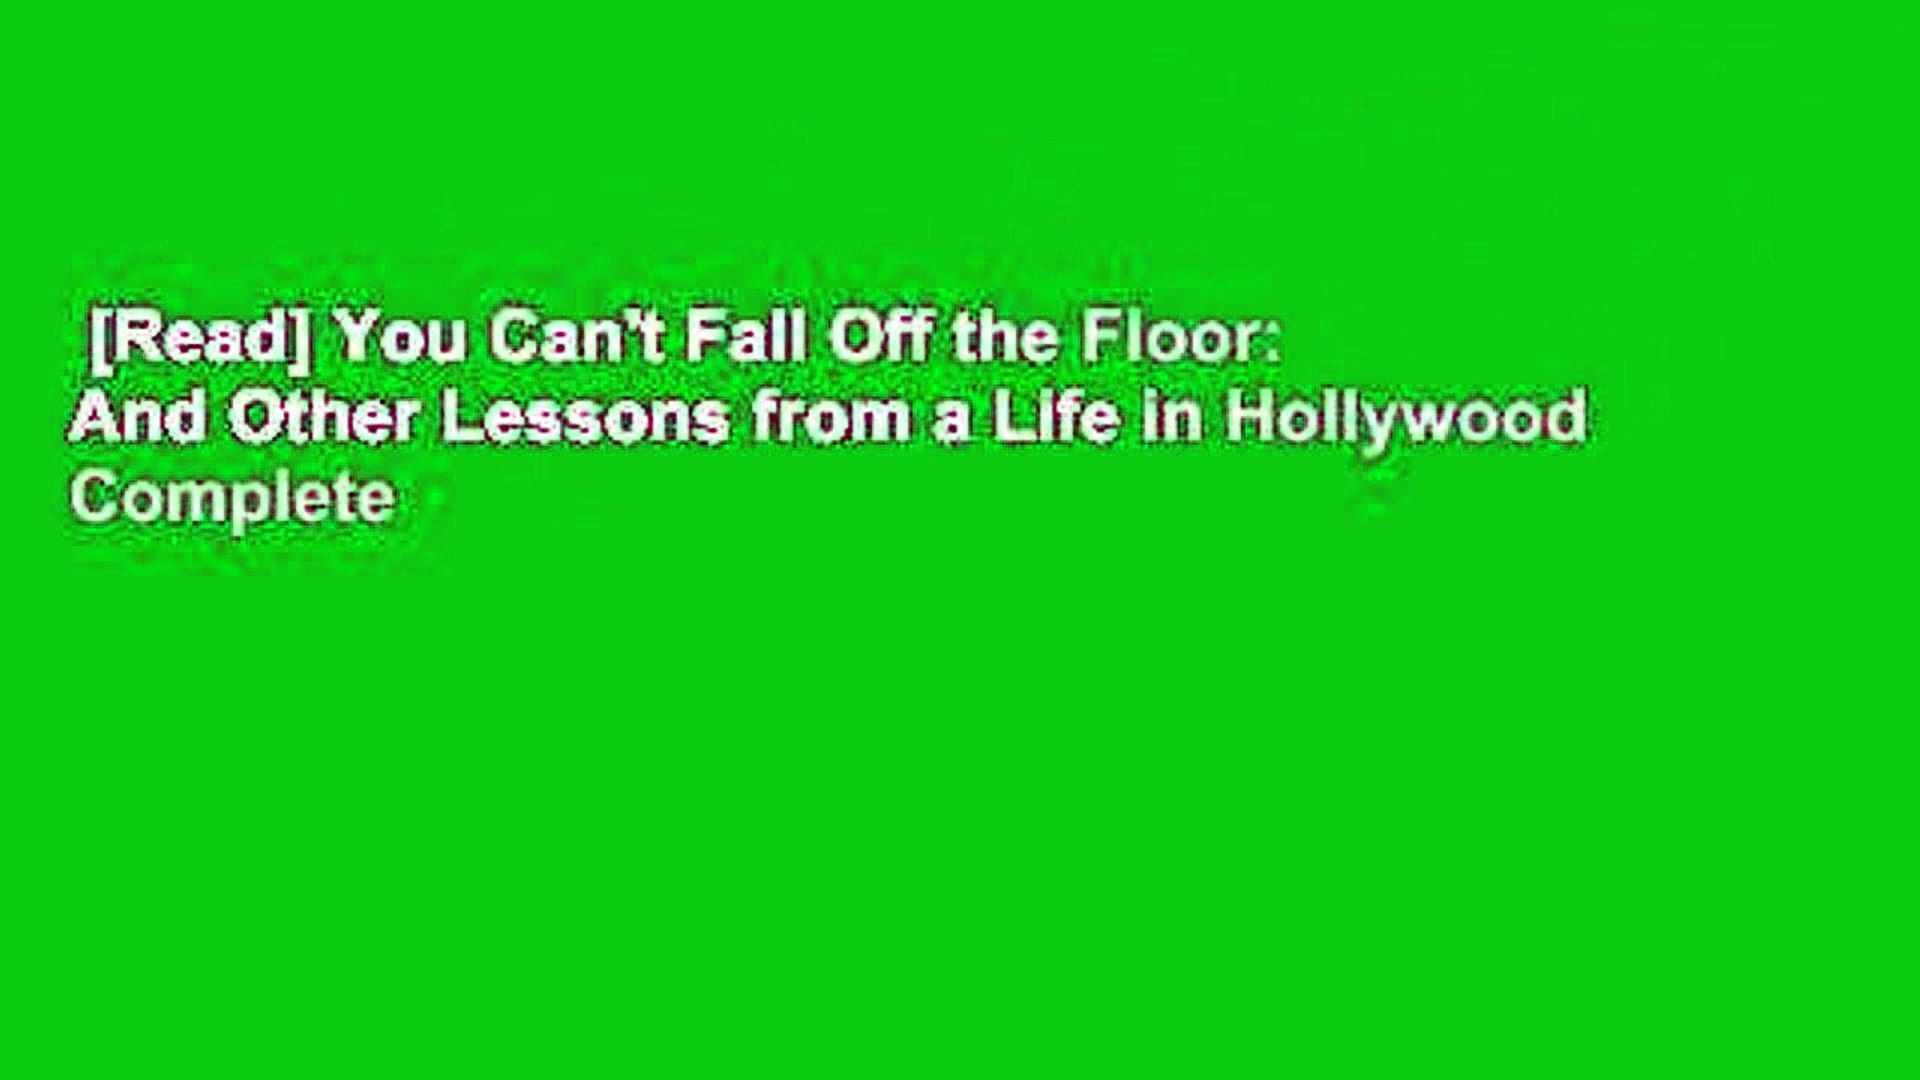 [Read] You Can't Fall Off the Floor: And Other Lessons from a Life in Hollywood Complete